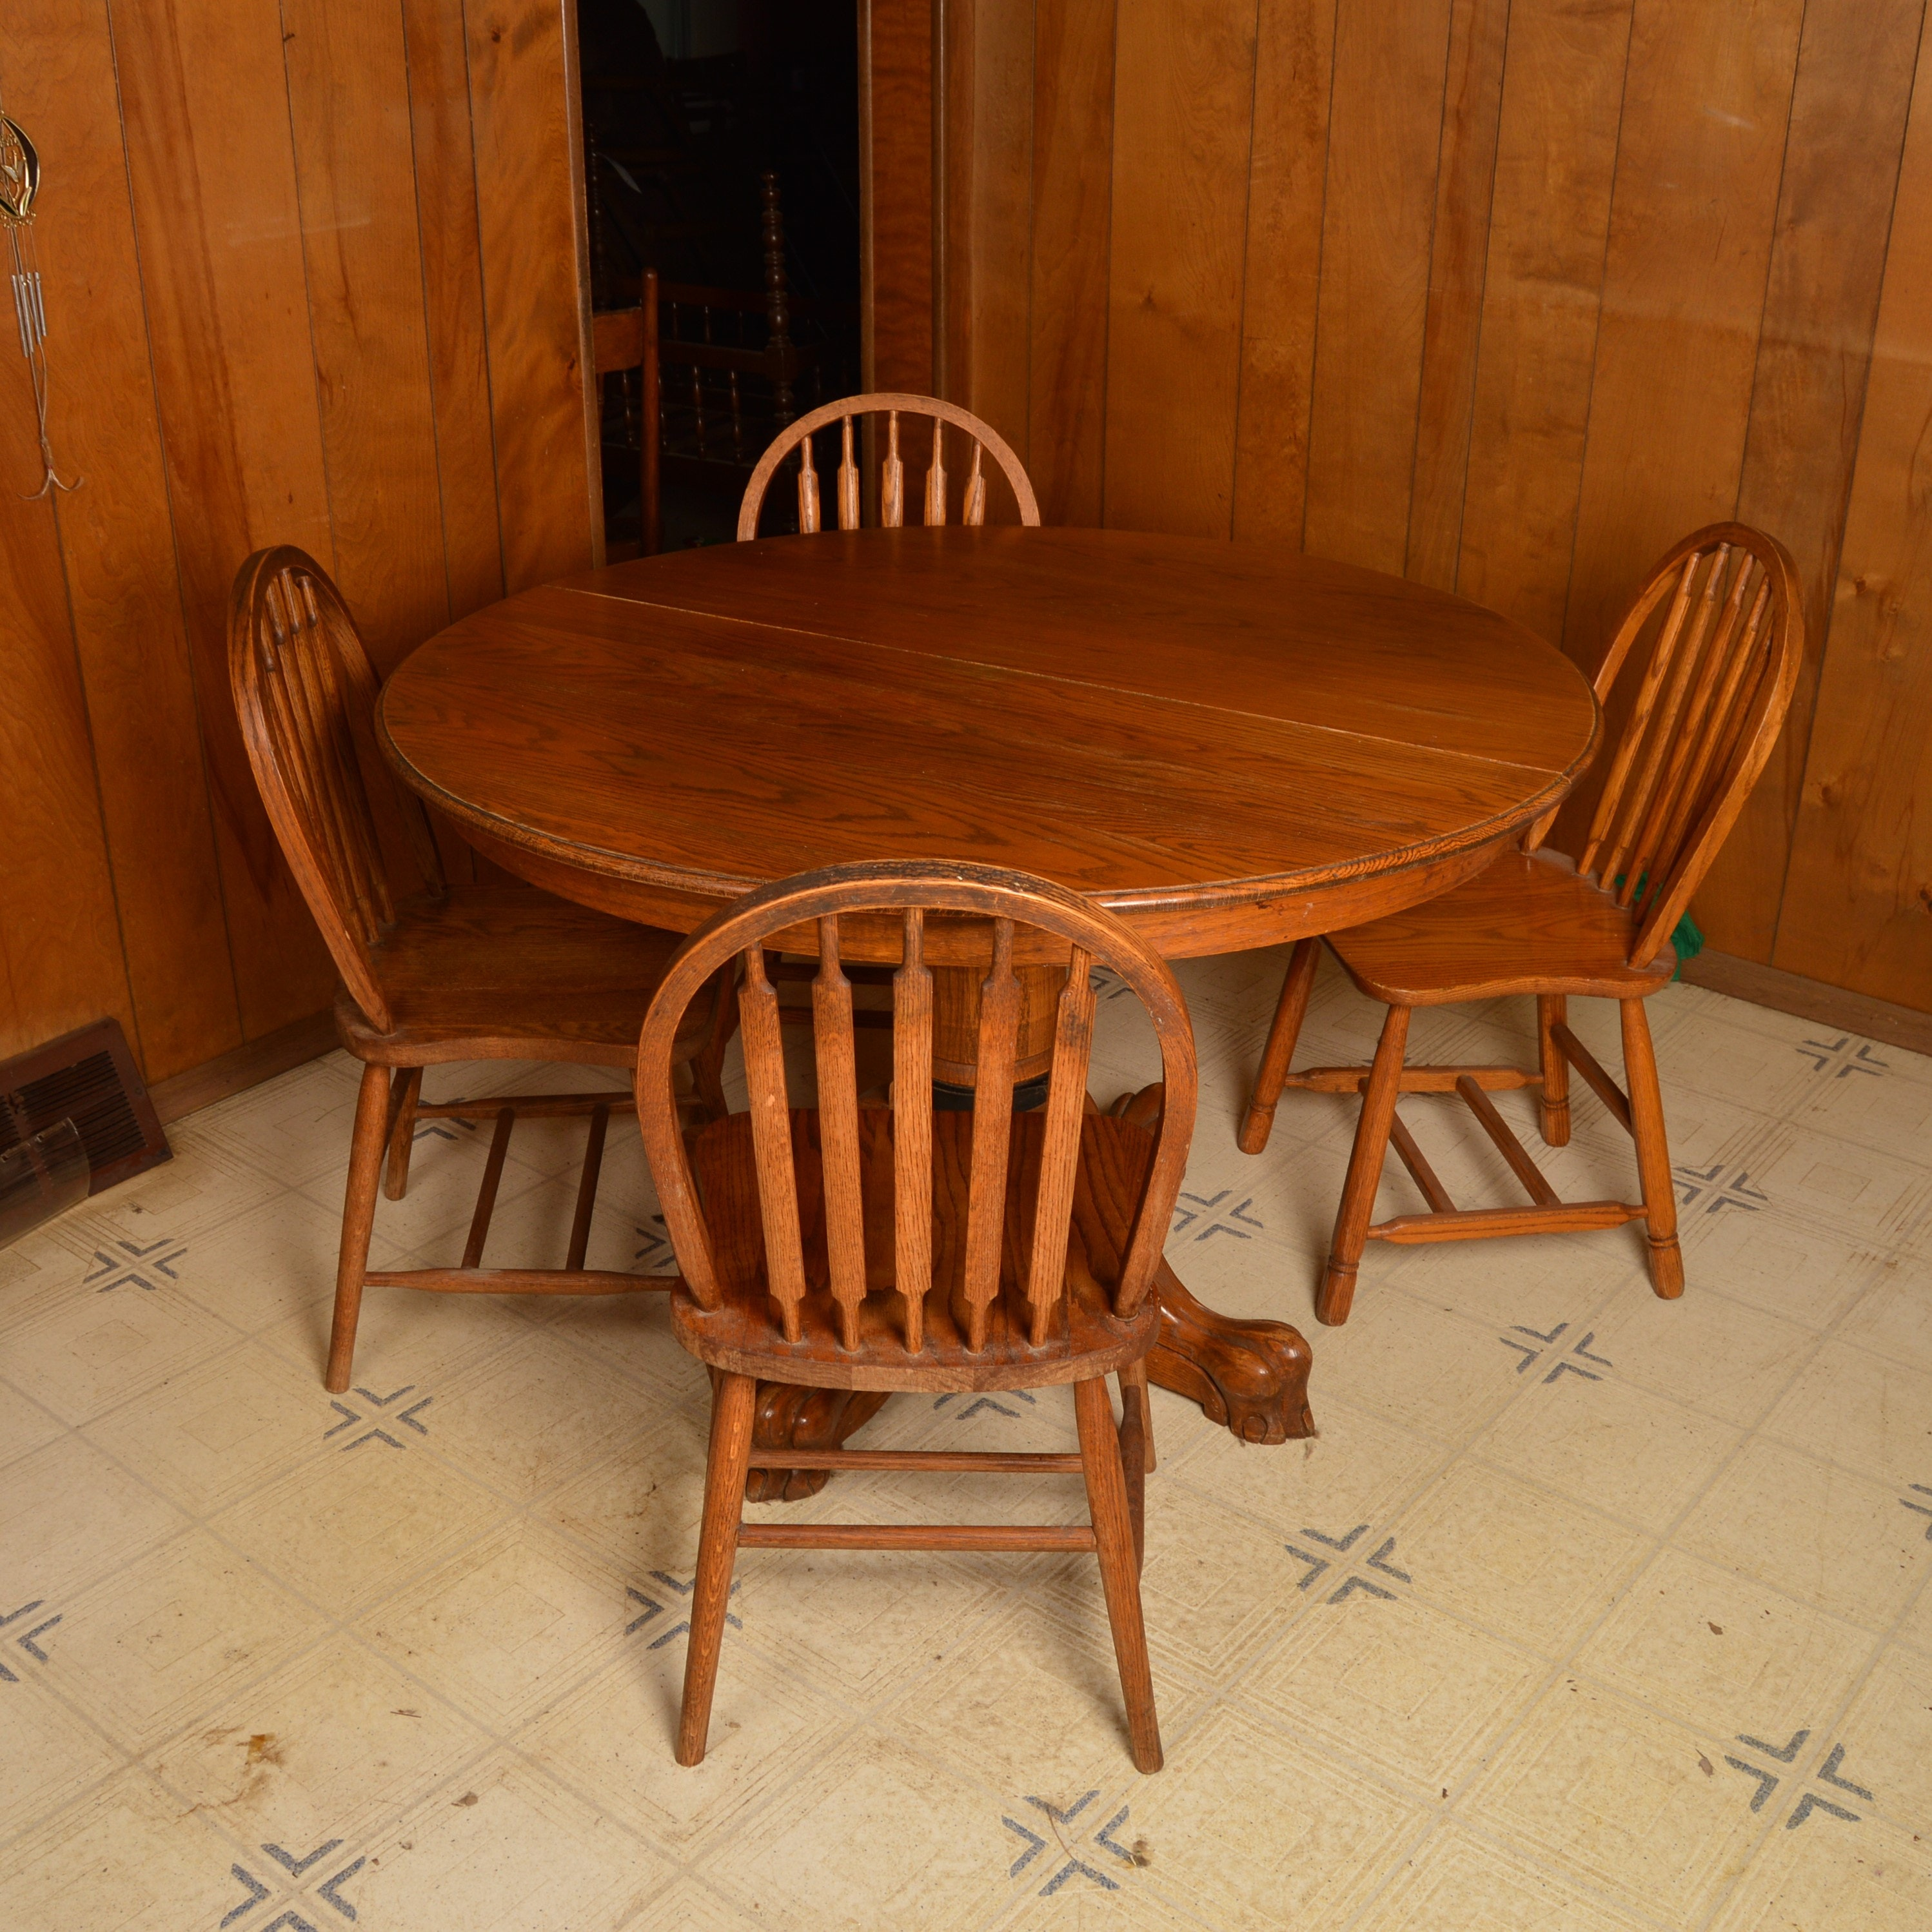 Vintage Oak Pedestal Dining Table and Four Chairs